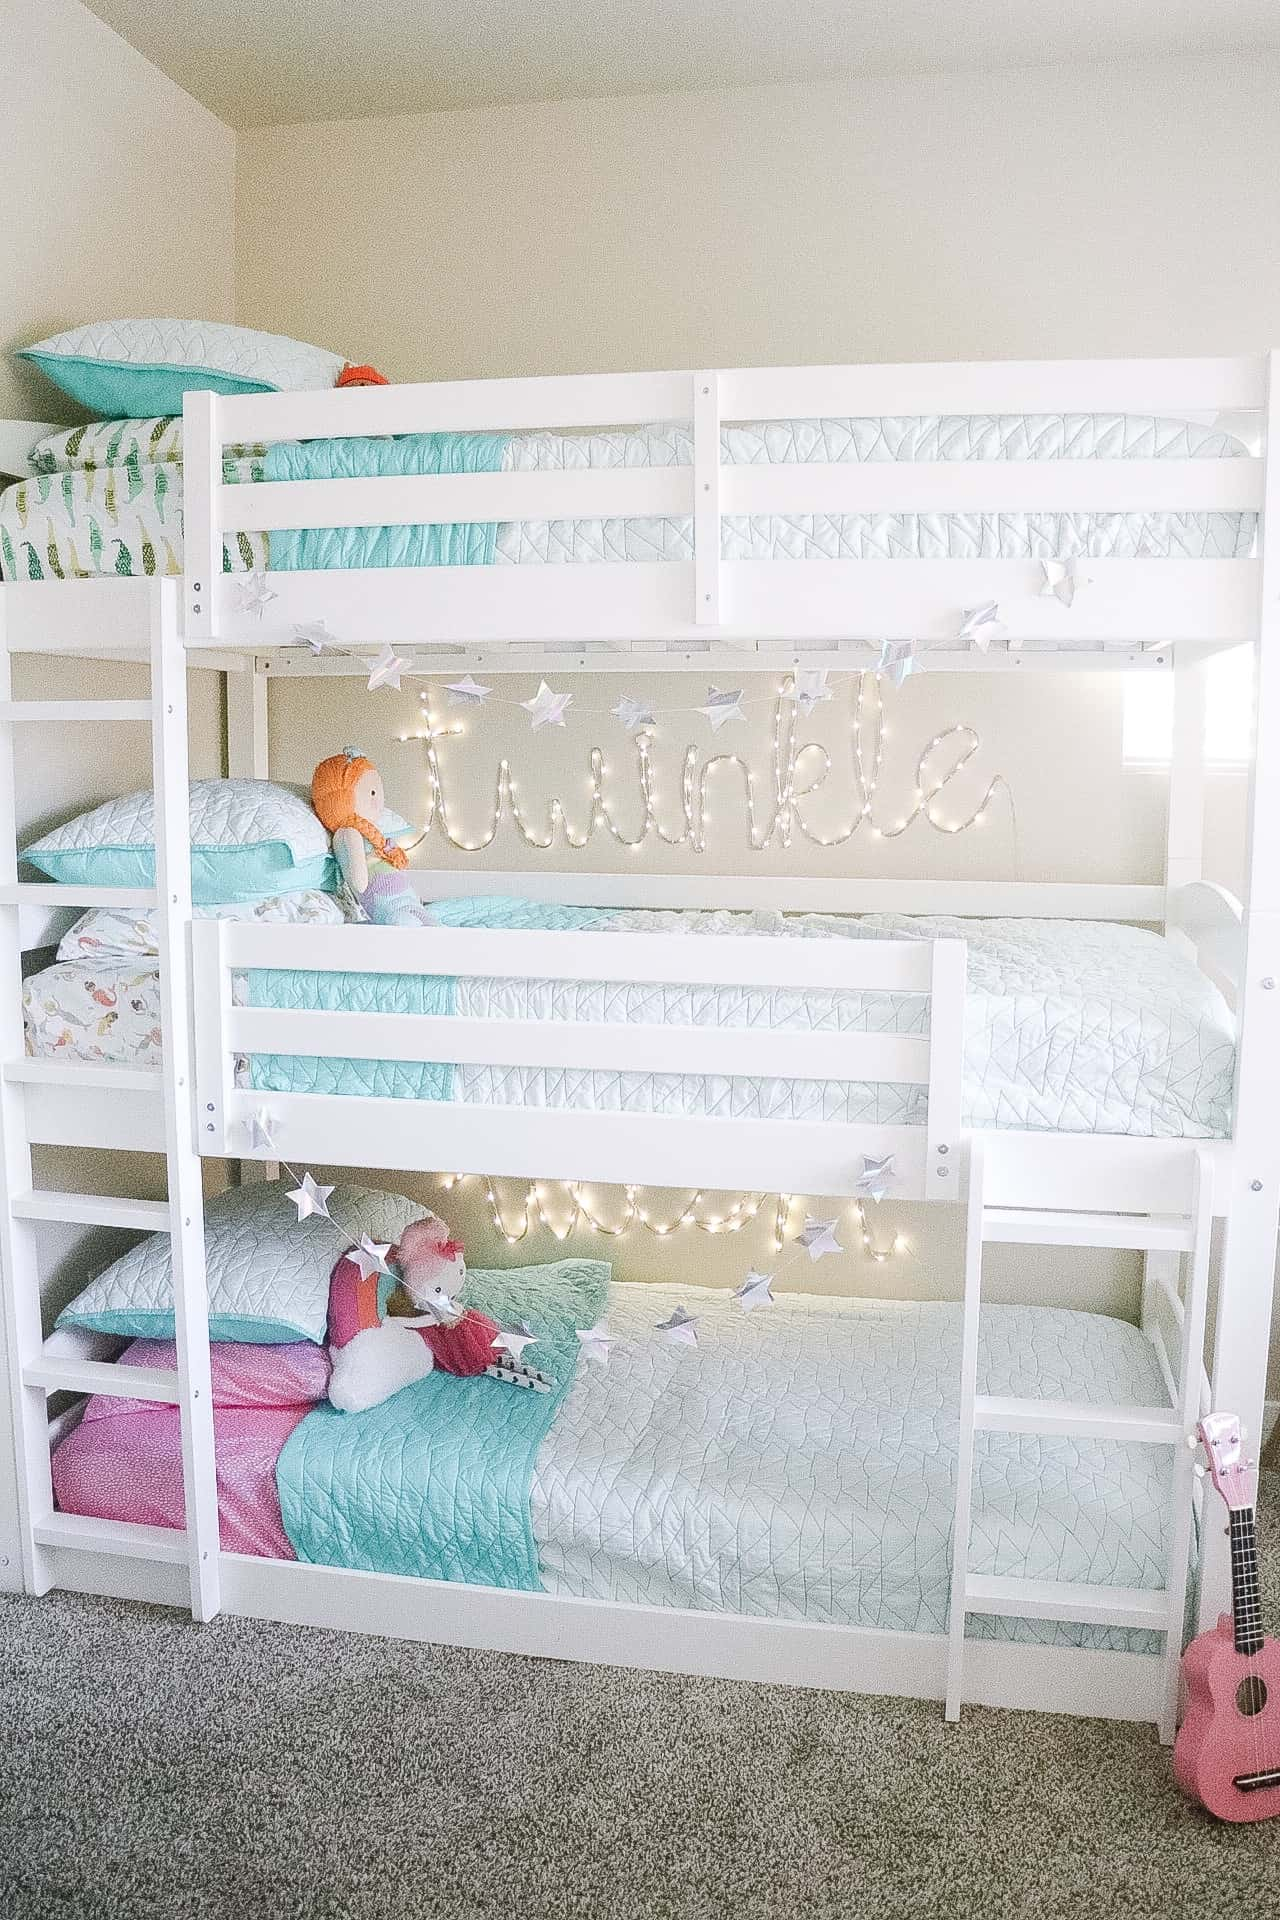 triple bunk beds in a room for siblings